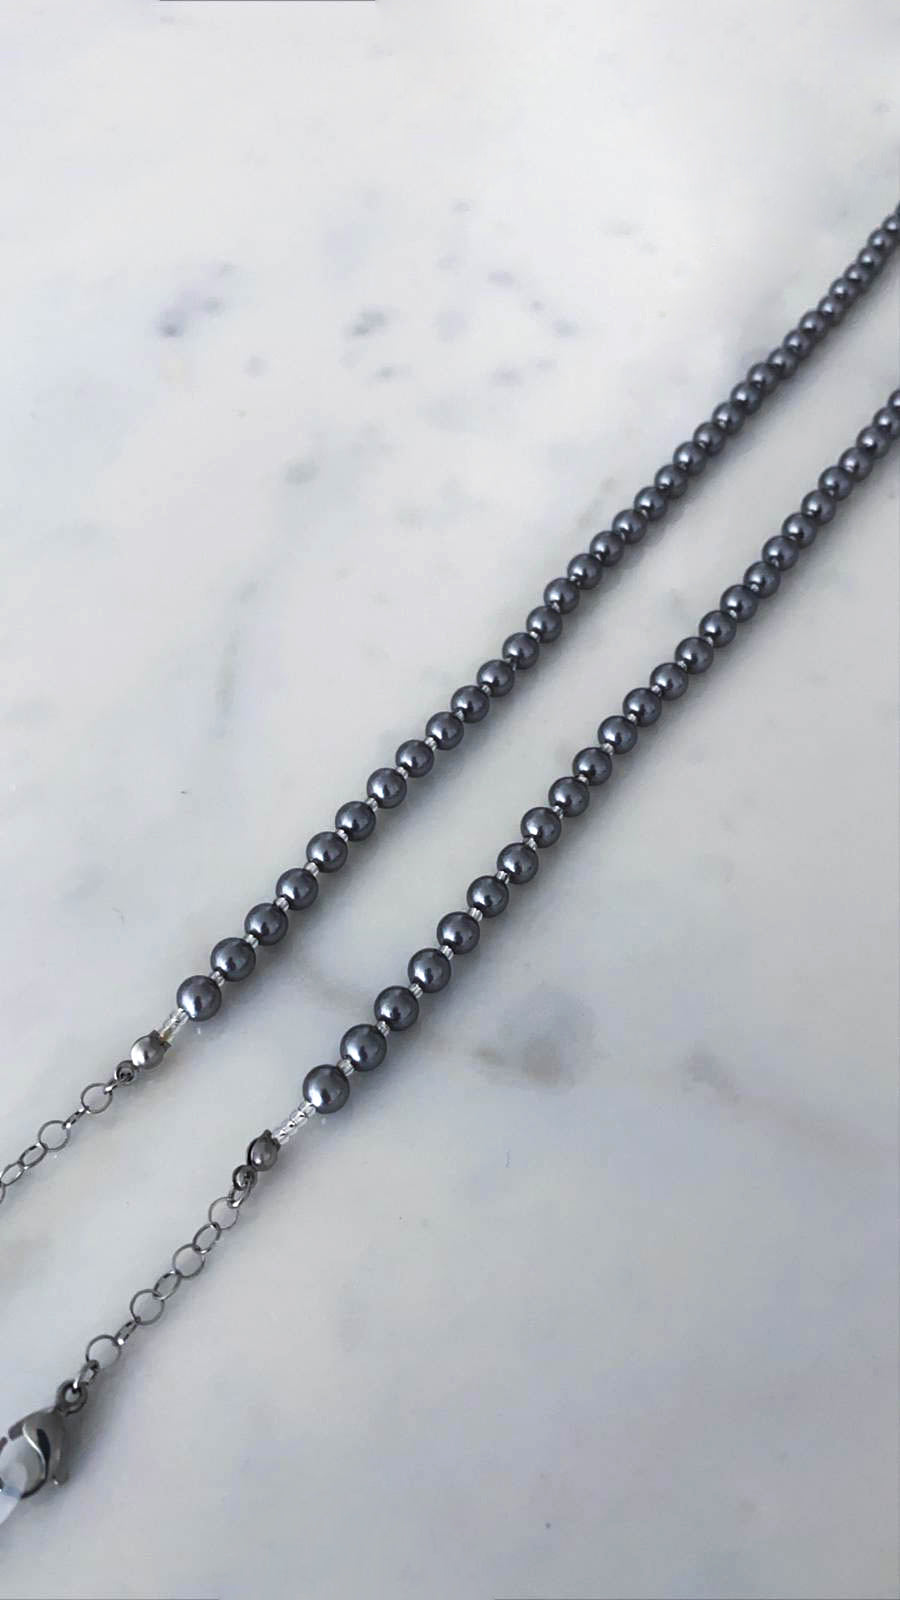 Sunglass/Mask Chain - Gray Pearl